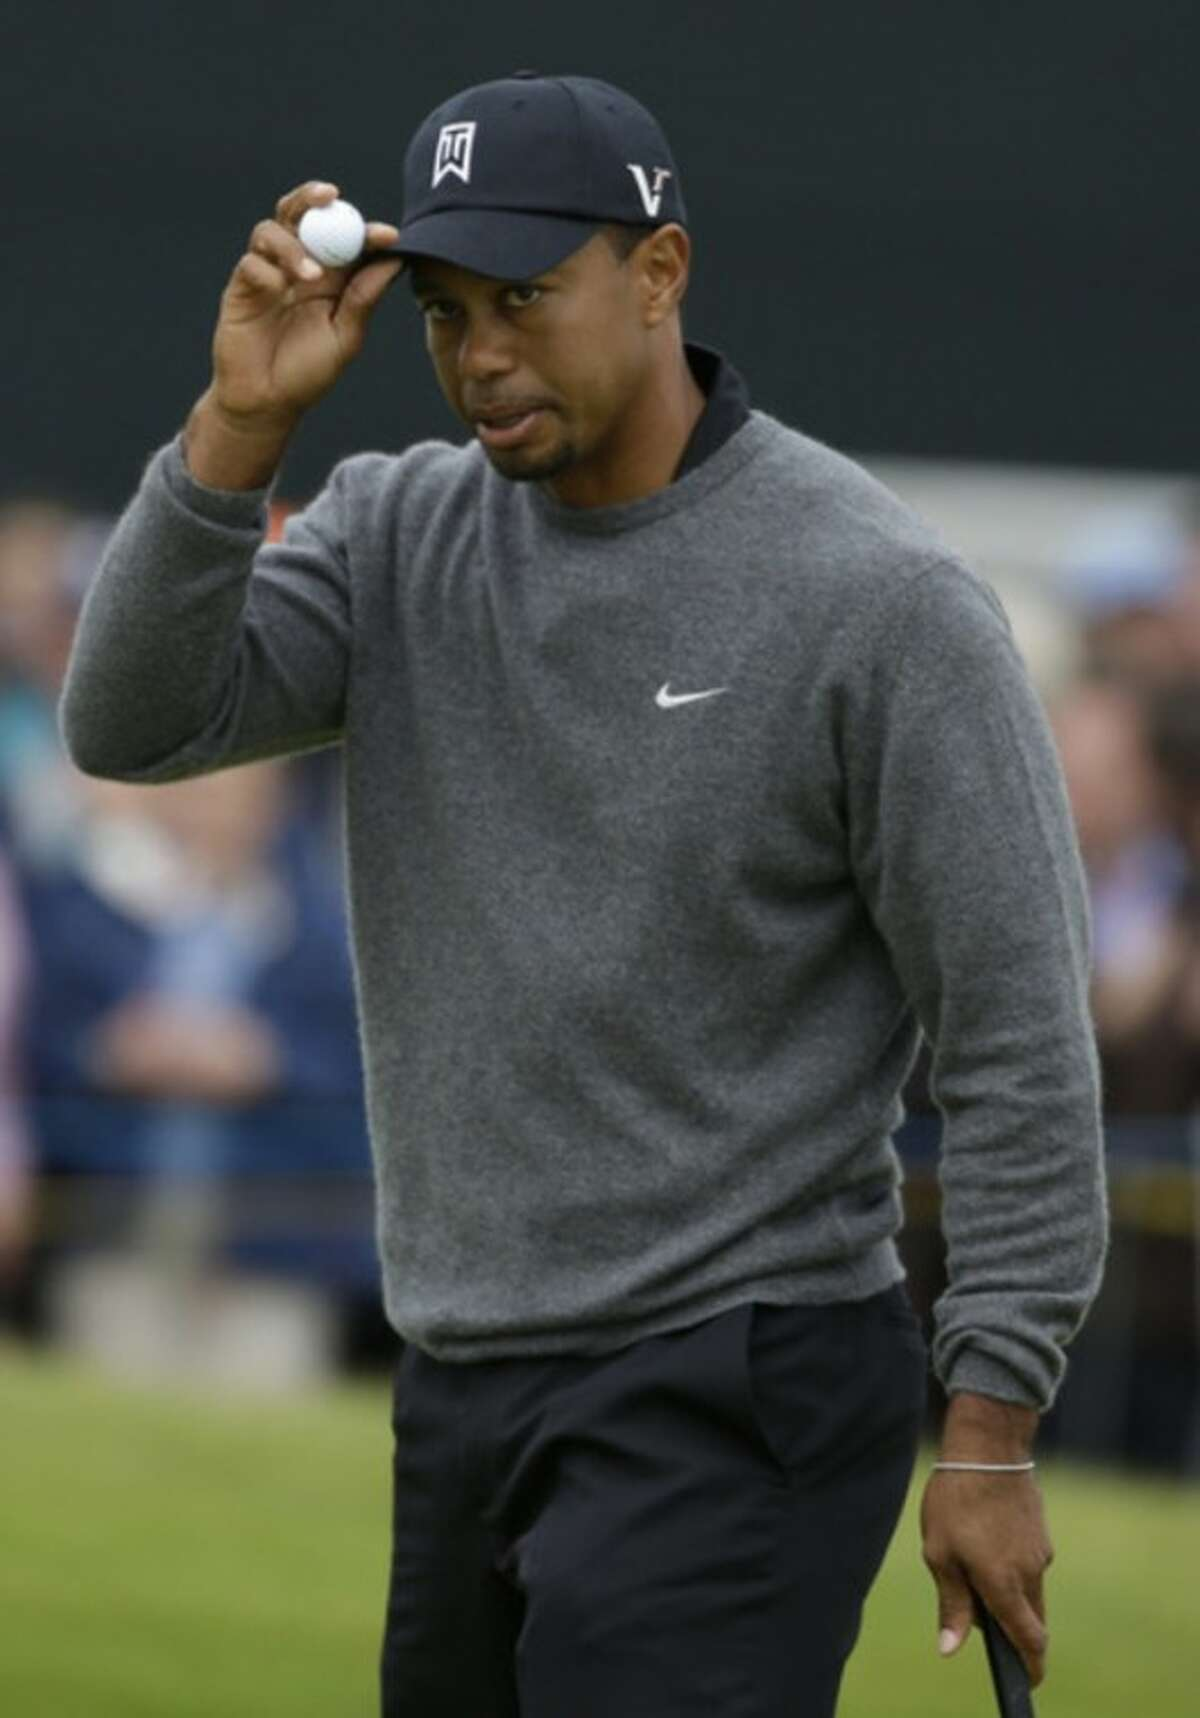 Tiger Woods of the United States reacts after a birdie on the sixth hole at Royal Lytham & St Annes golf club during the second round of the British Open Golf Championship, Lytham St Annes, England, Friday, July 20, 2012. (AP Photo/Chris Carlson)